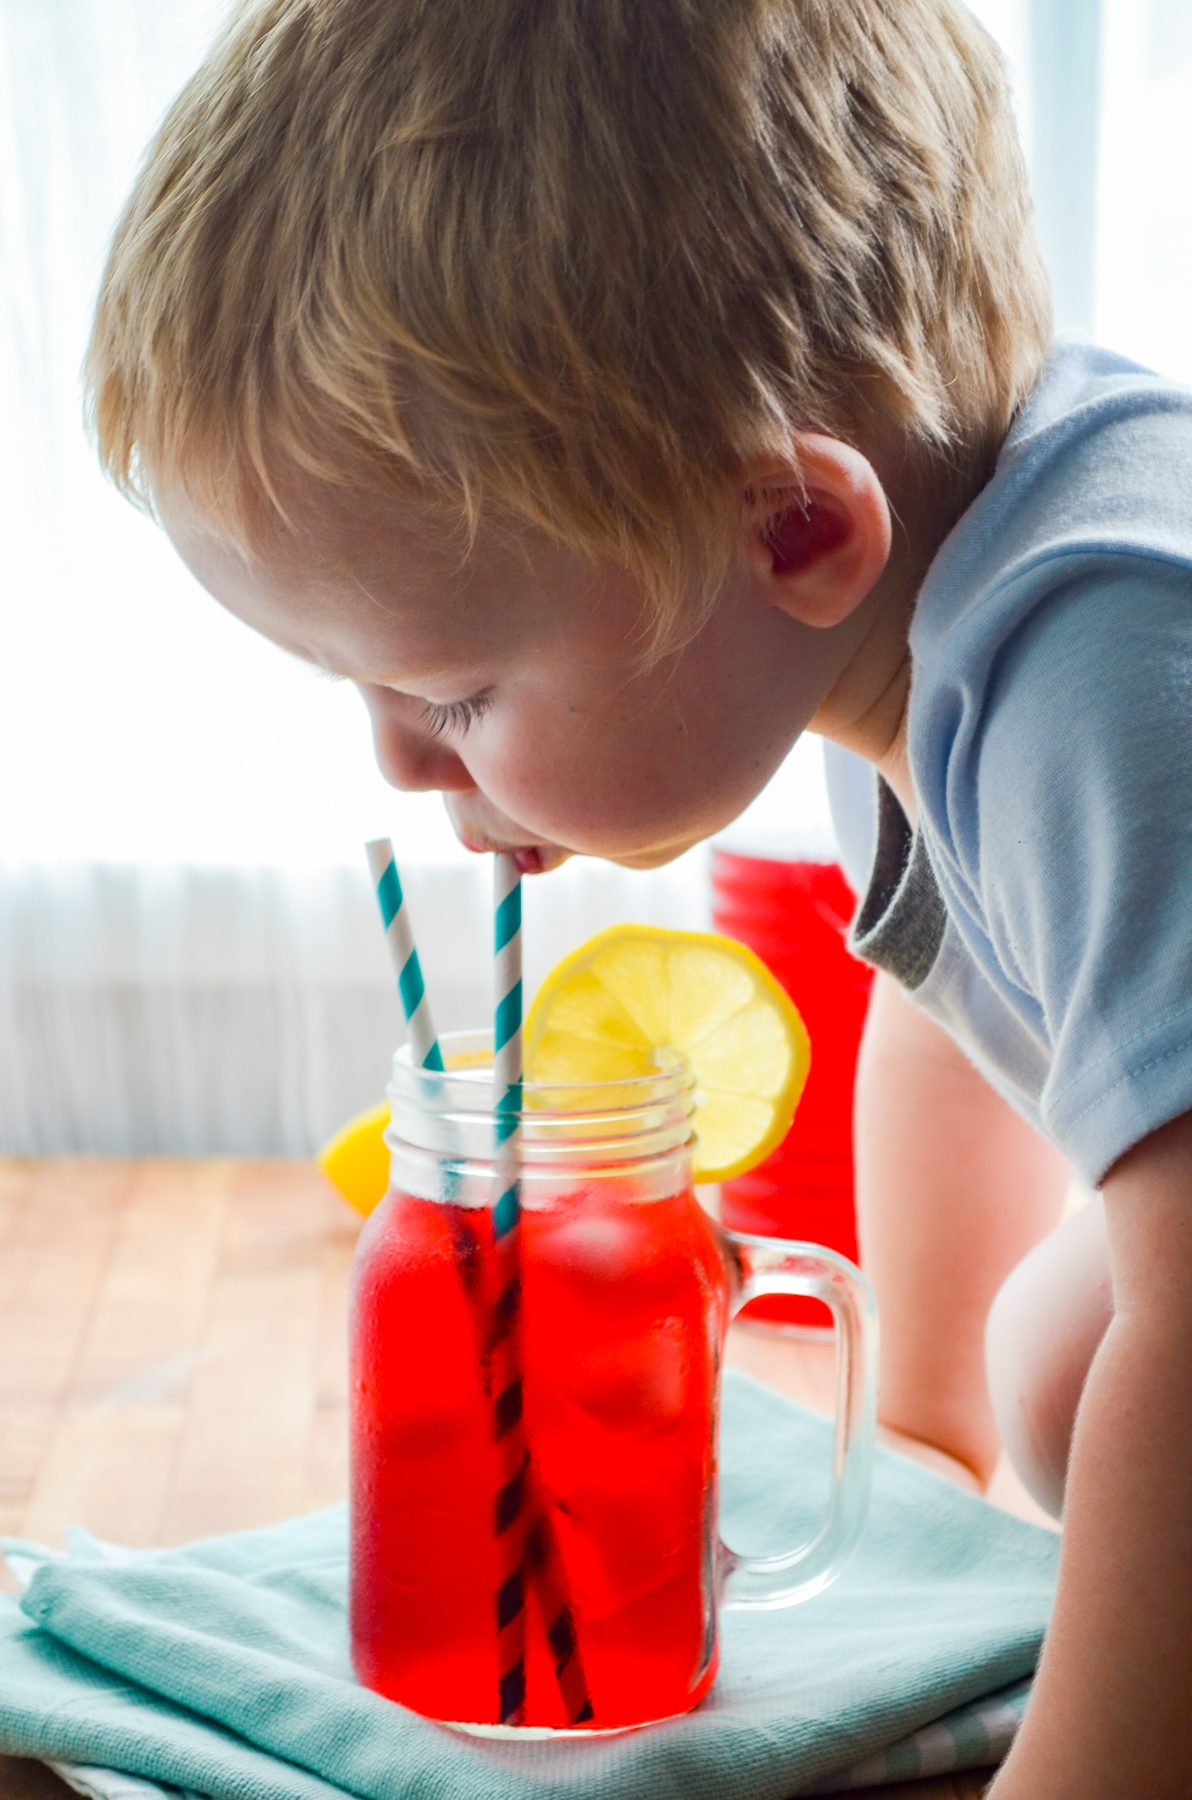 A toddler taking a sip of passion tea lemonade.